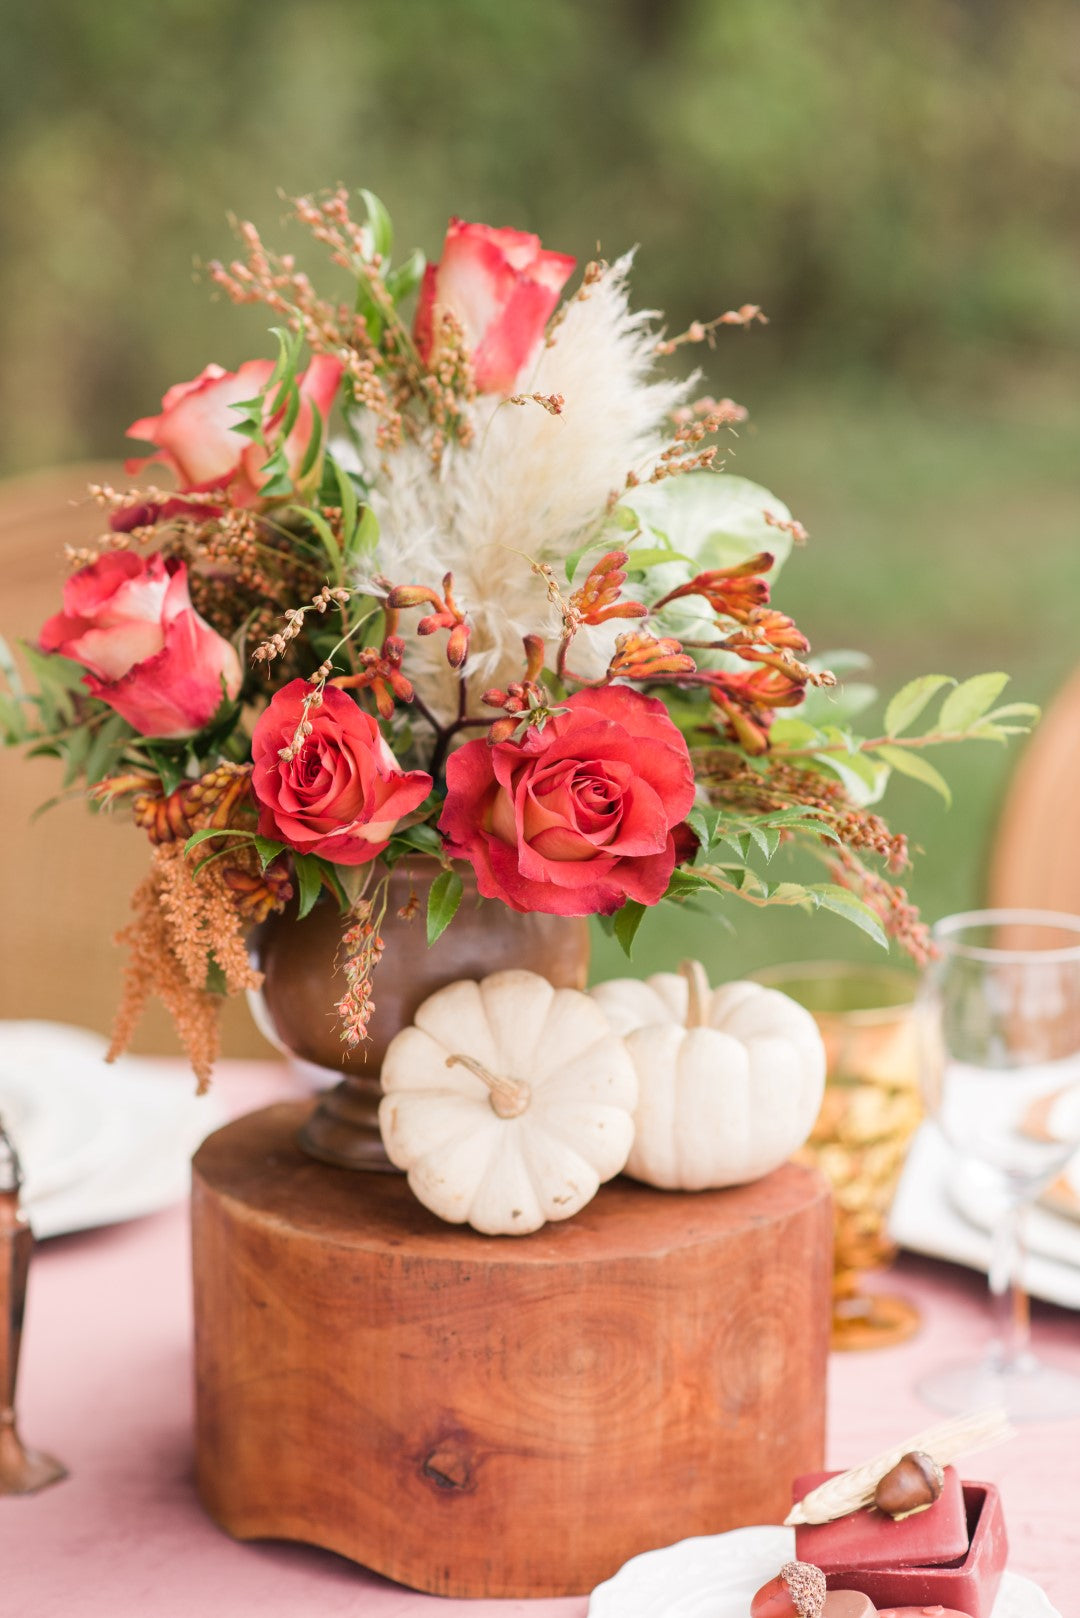 Flowers and pumpkins at a fall wedding